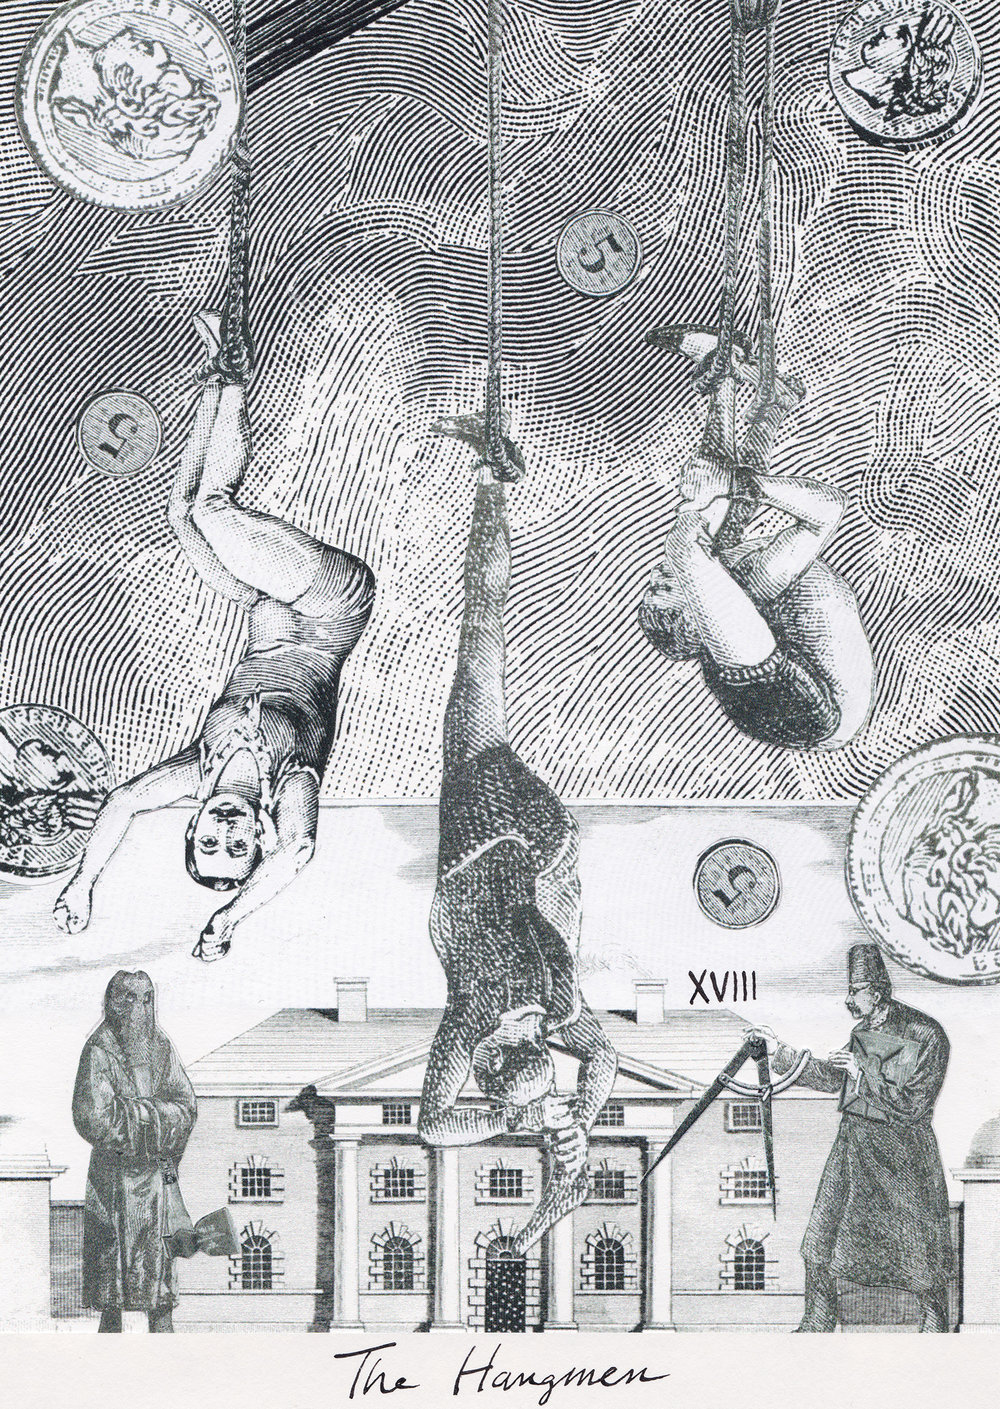 The Hangmen, Collage Giclée print on Hahnemühle Photo Rag, 21x14.8cm